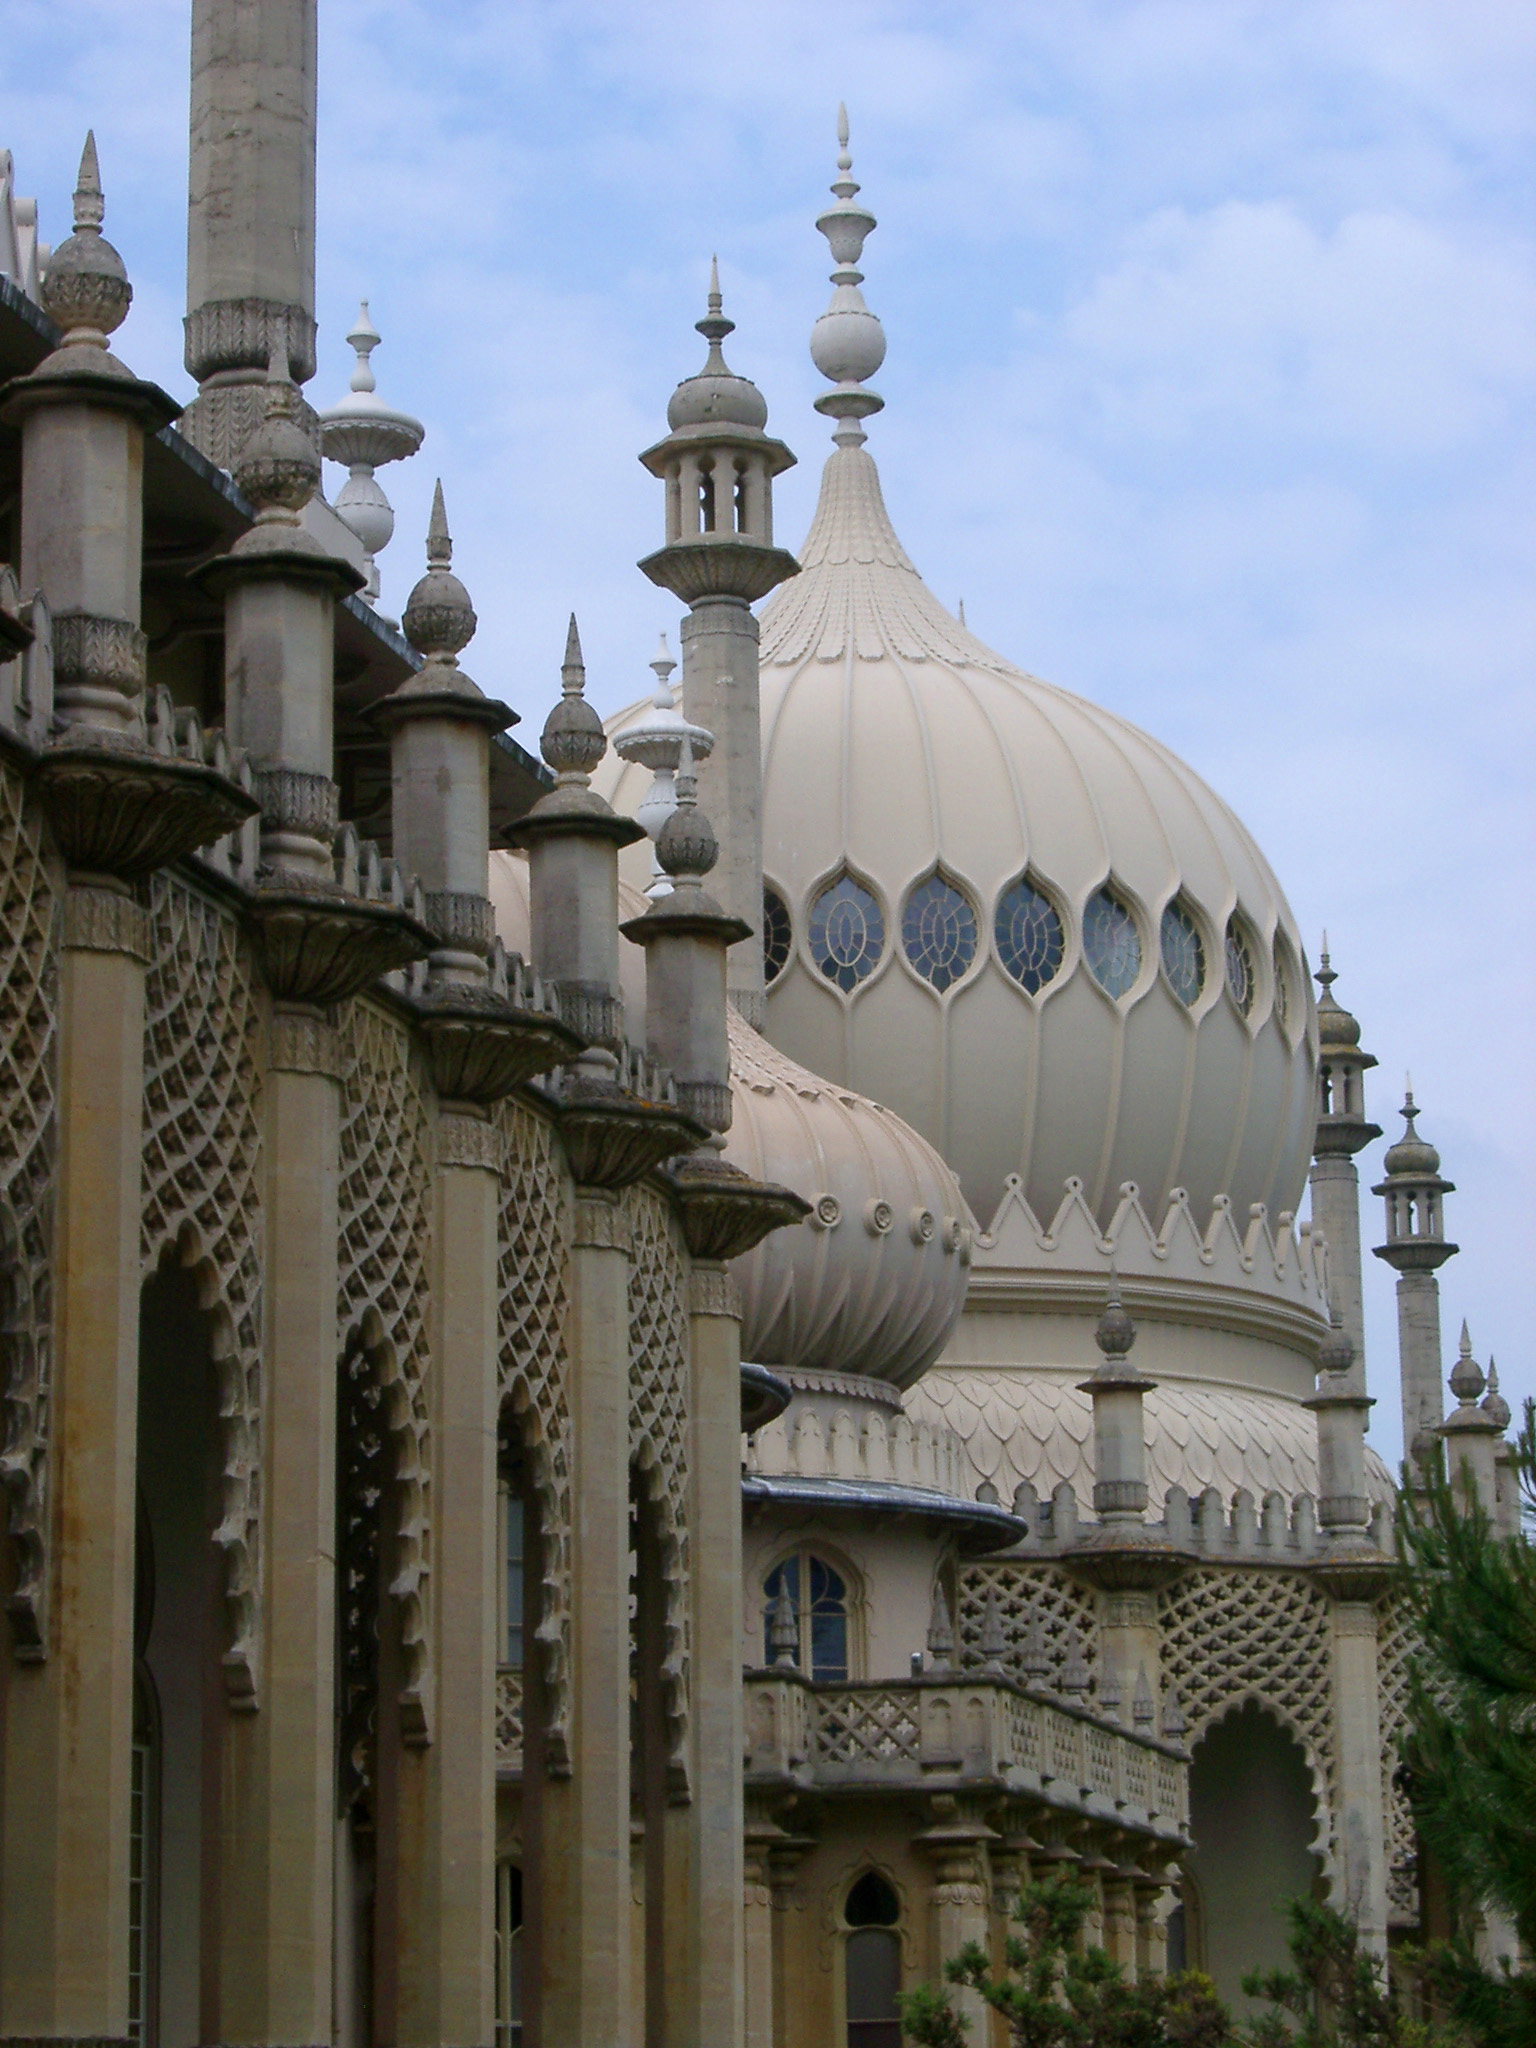 Architectural Detail of Dome and Exterior of Royal Pavilion, Brighton, England